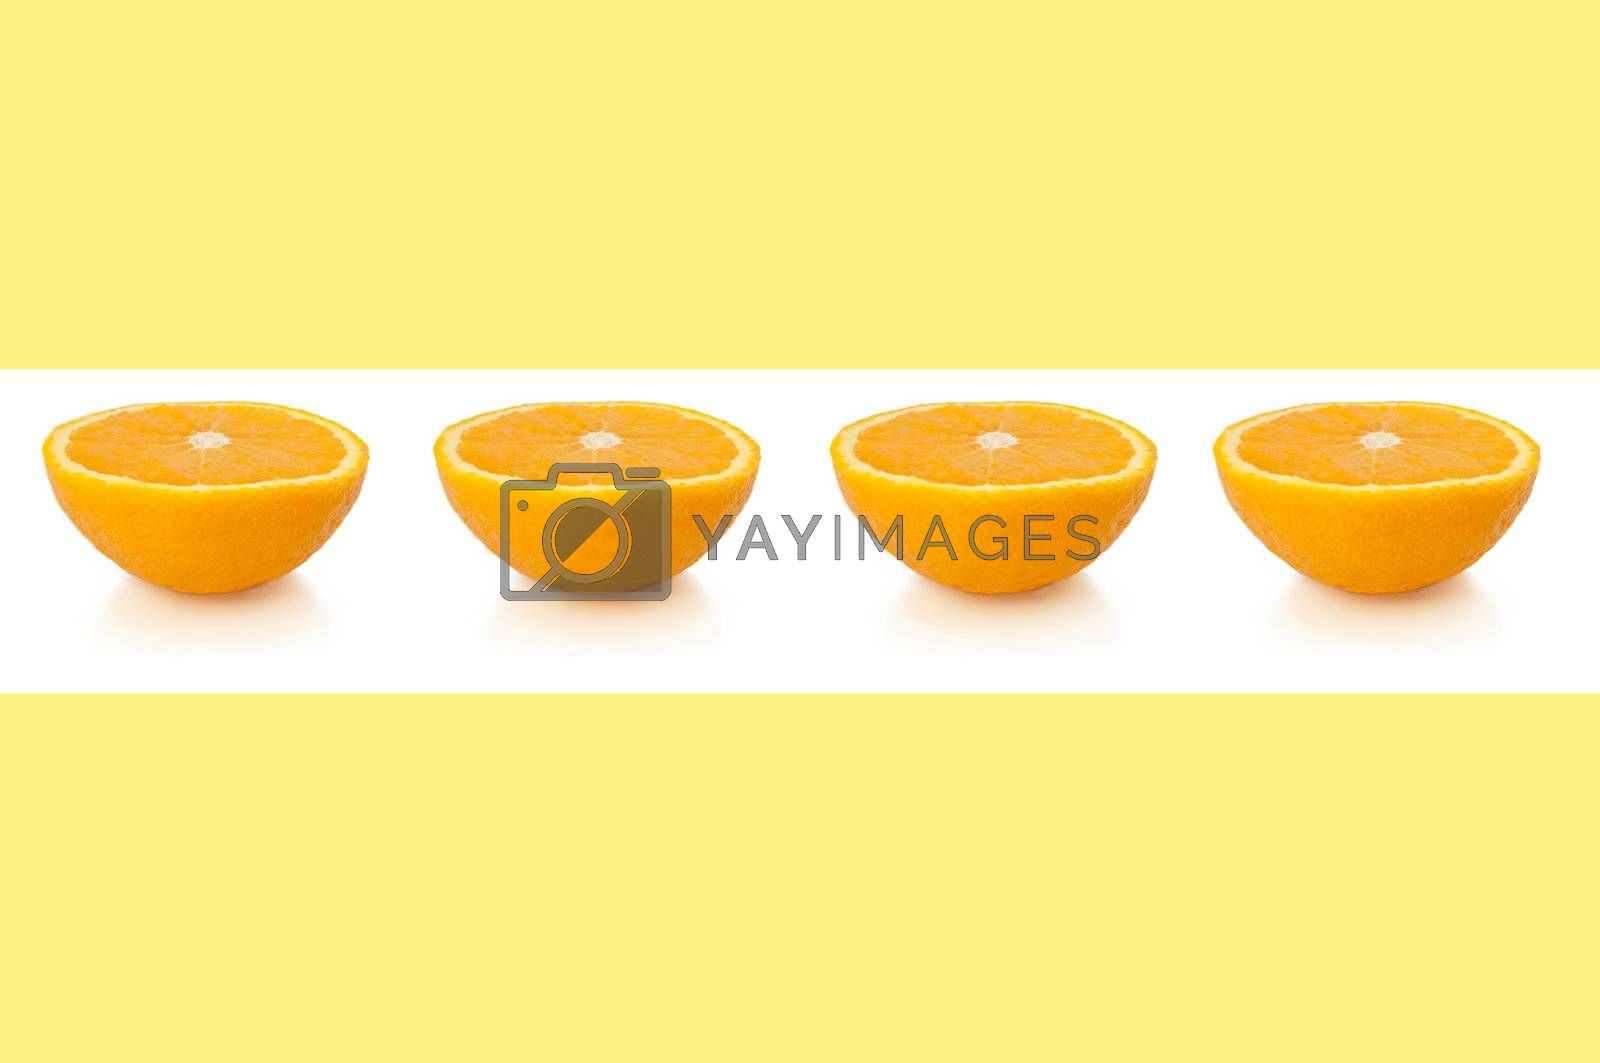 A line of small orange halves over white horizontal band against a pale yellow background.